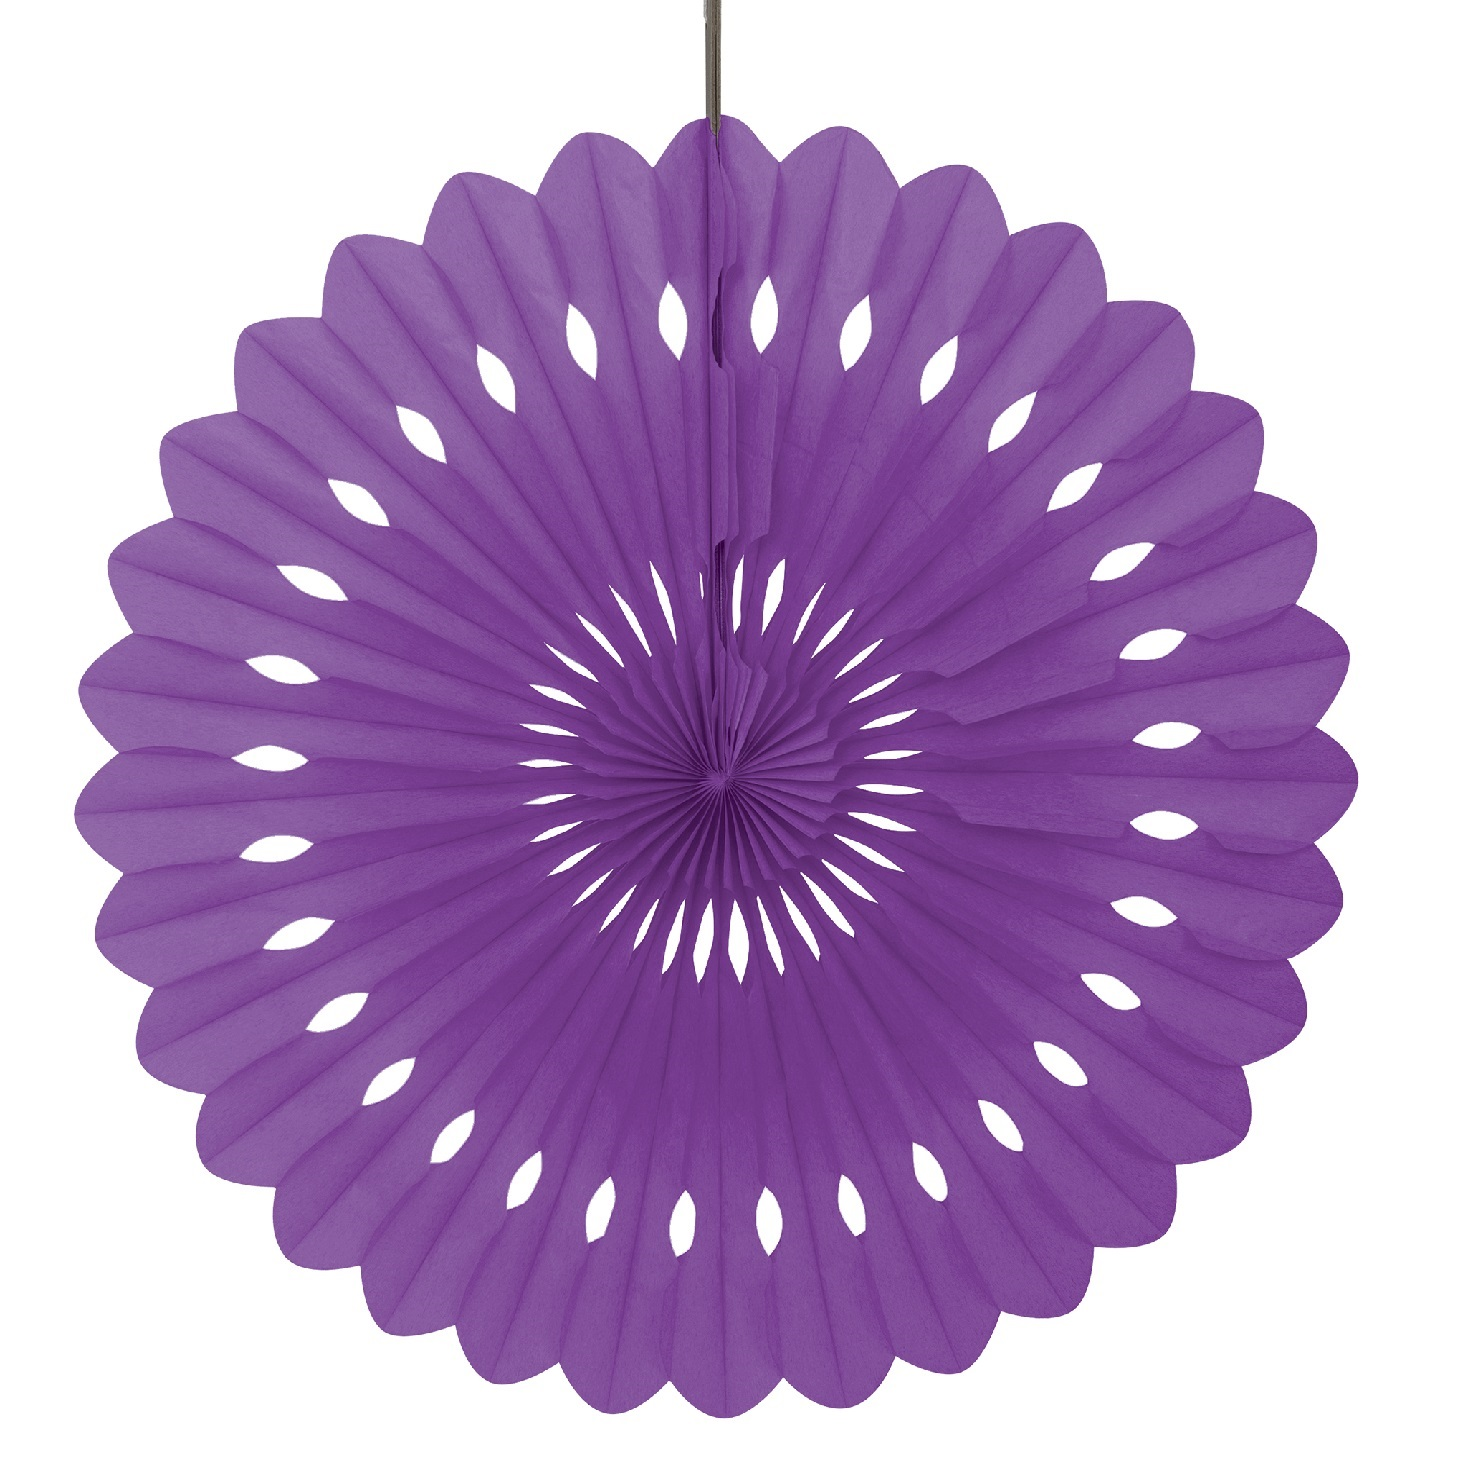 16 inch purple tissue paper fans are great for party